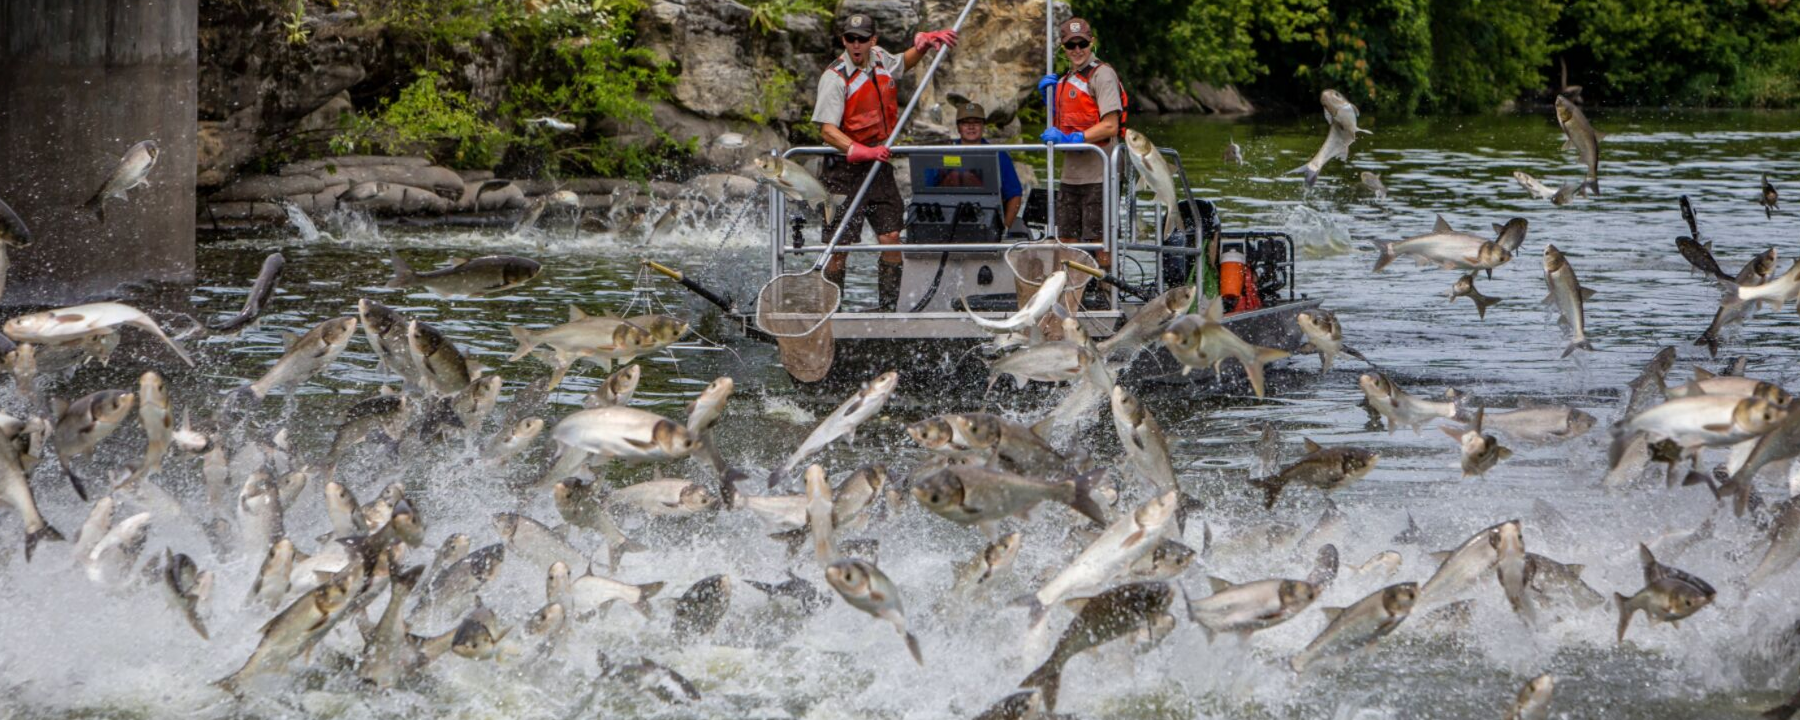 Invasive Carp Could Spread Across Lake Michigan on Detritus Diet